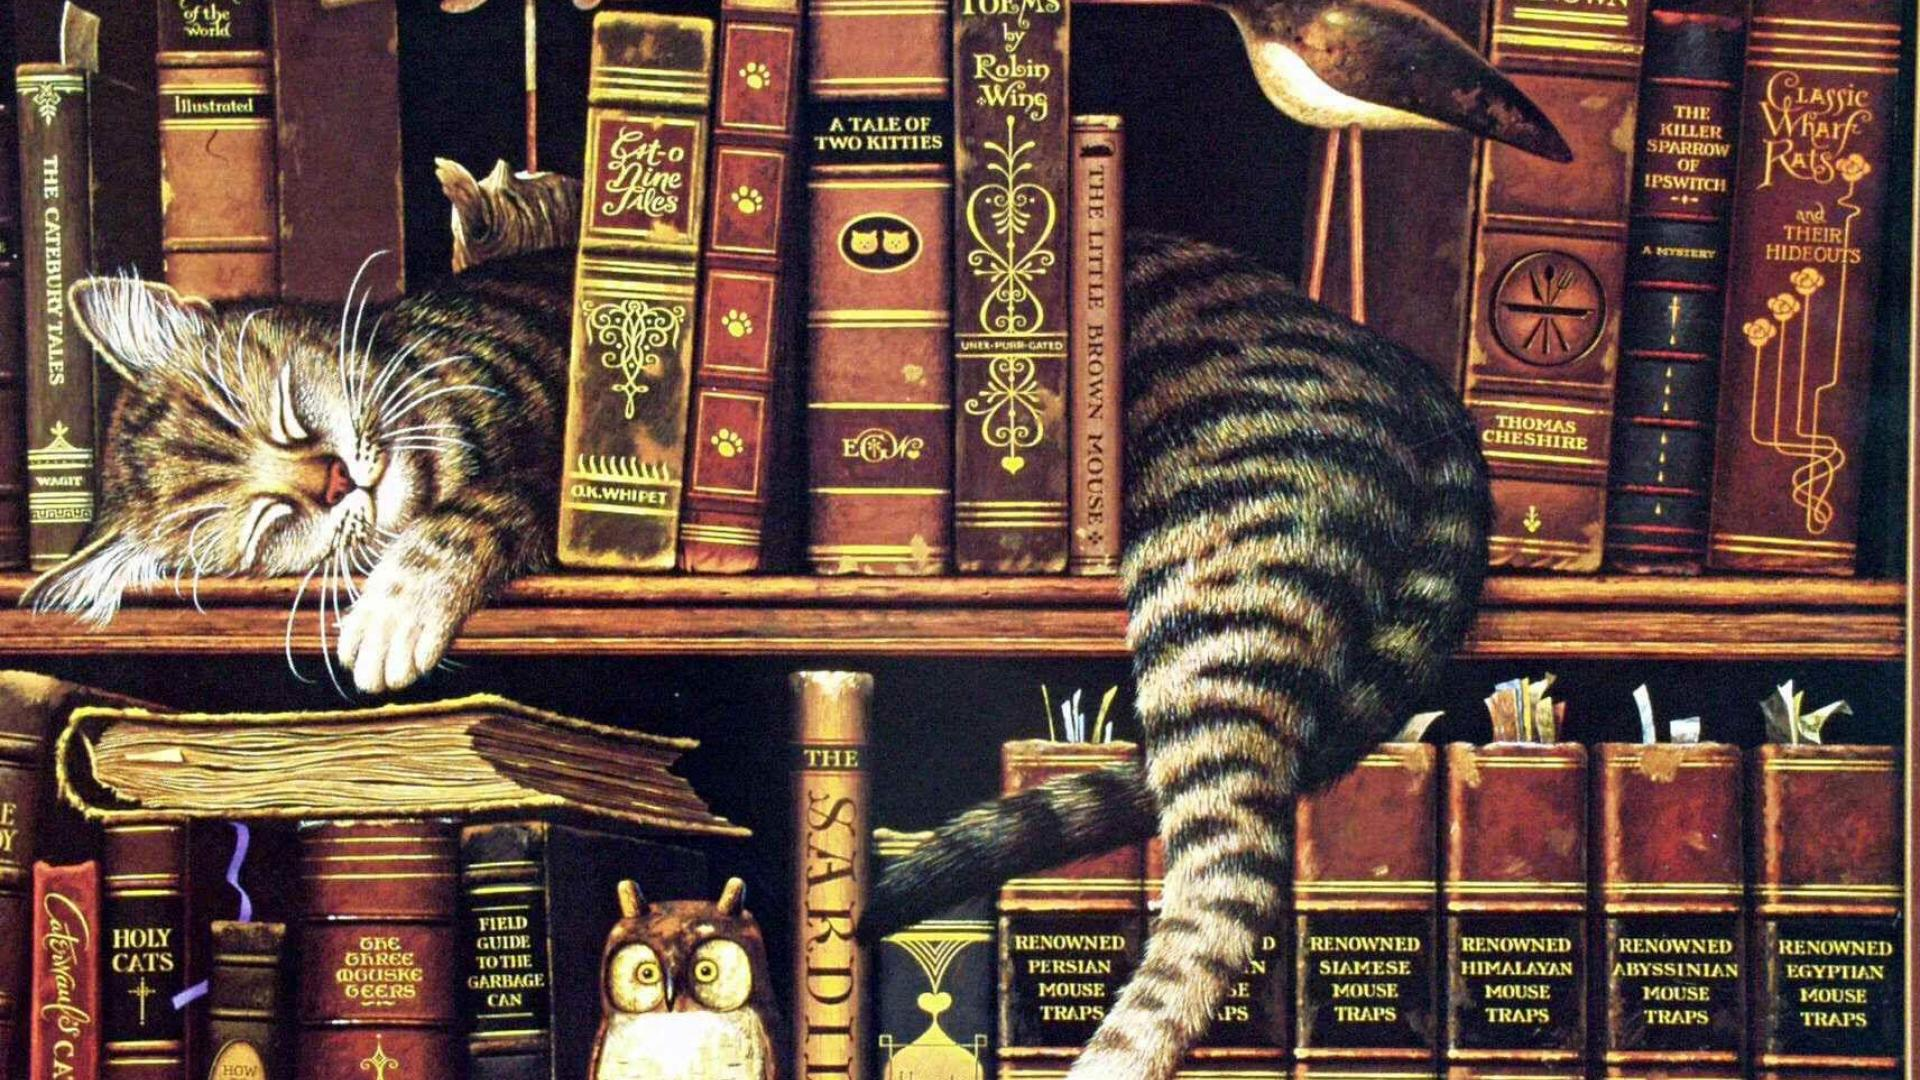 library-cat-sleeping-bookshelf-books-tired-adorable-bird-model-1920x1080